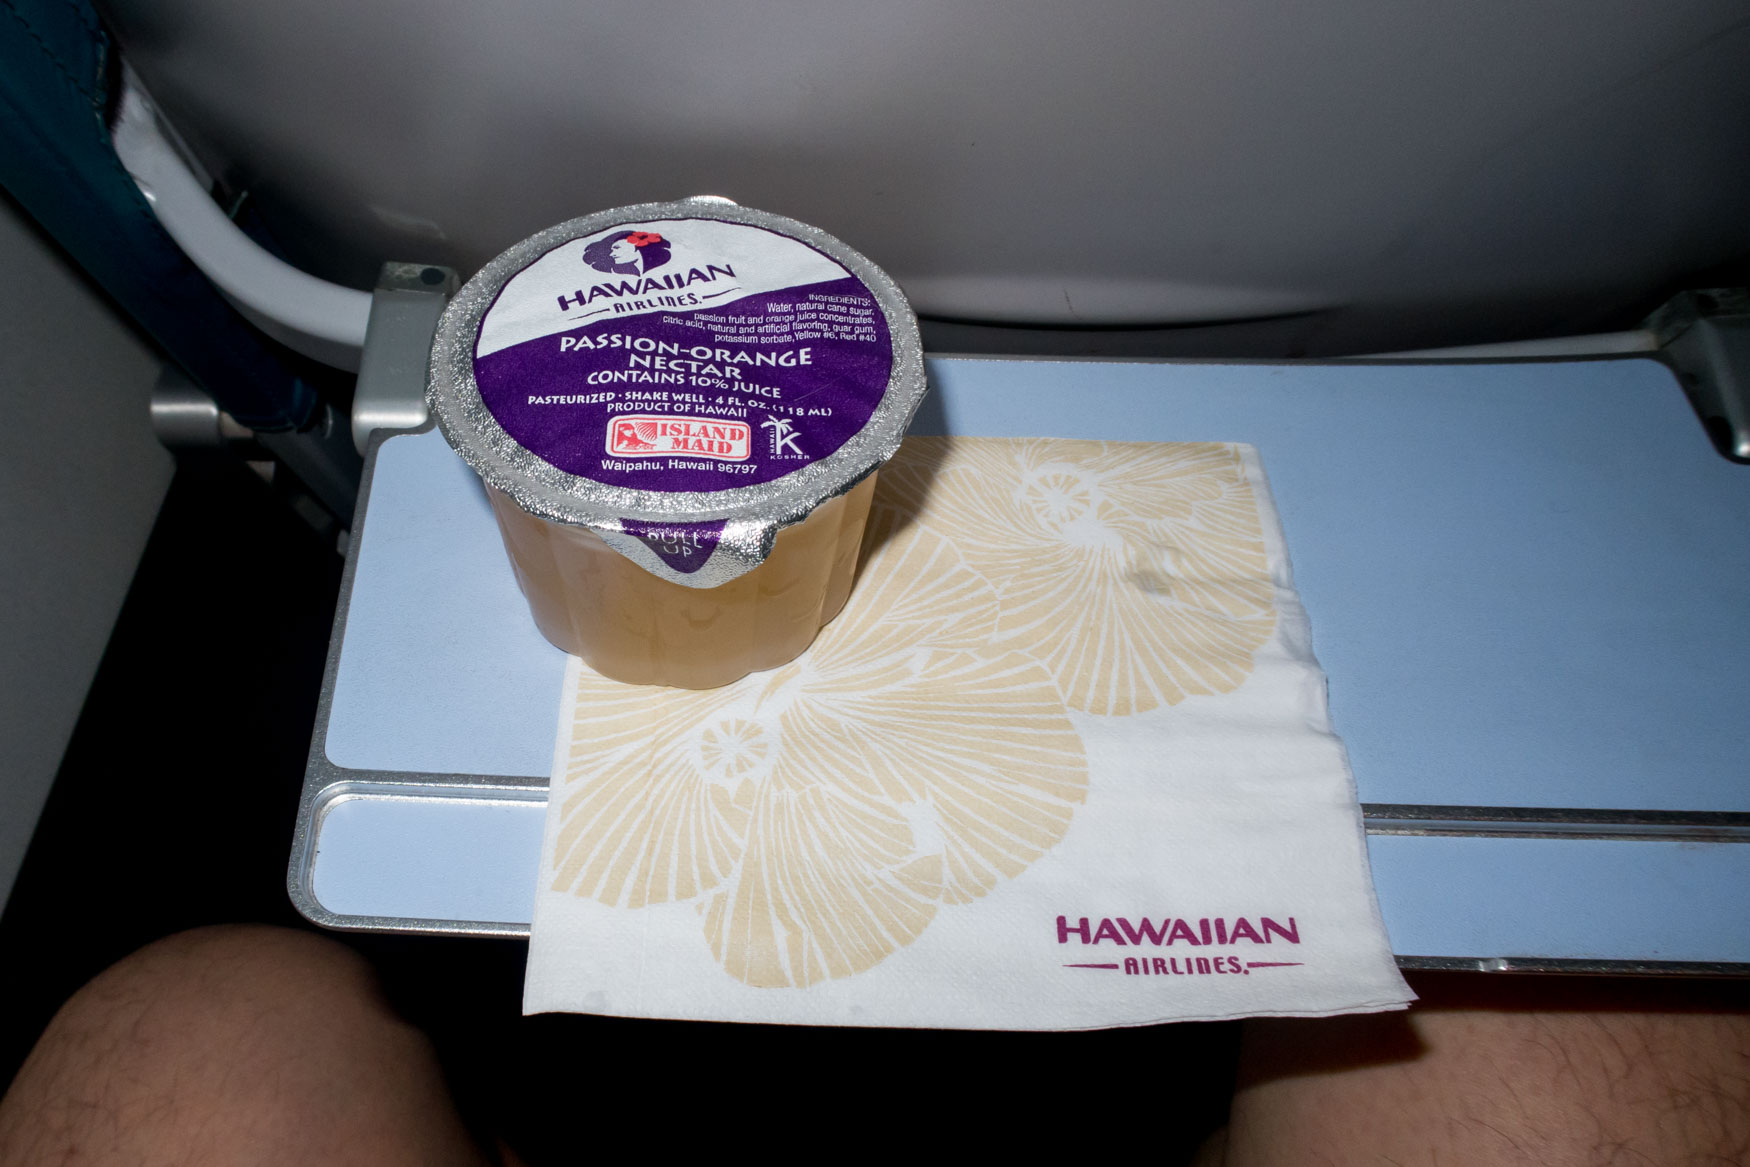 Hawaiian Airlines Inter-Island Service